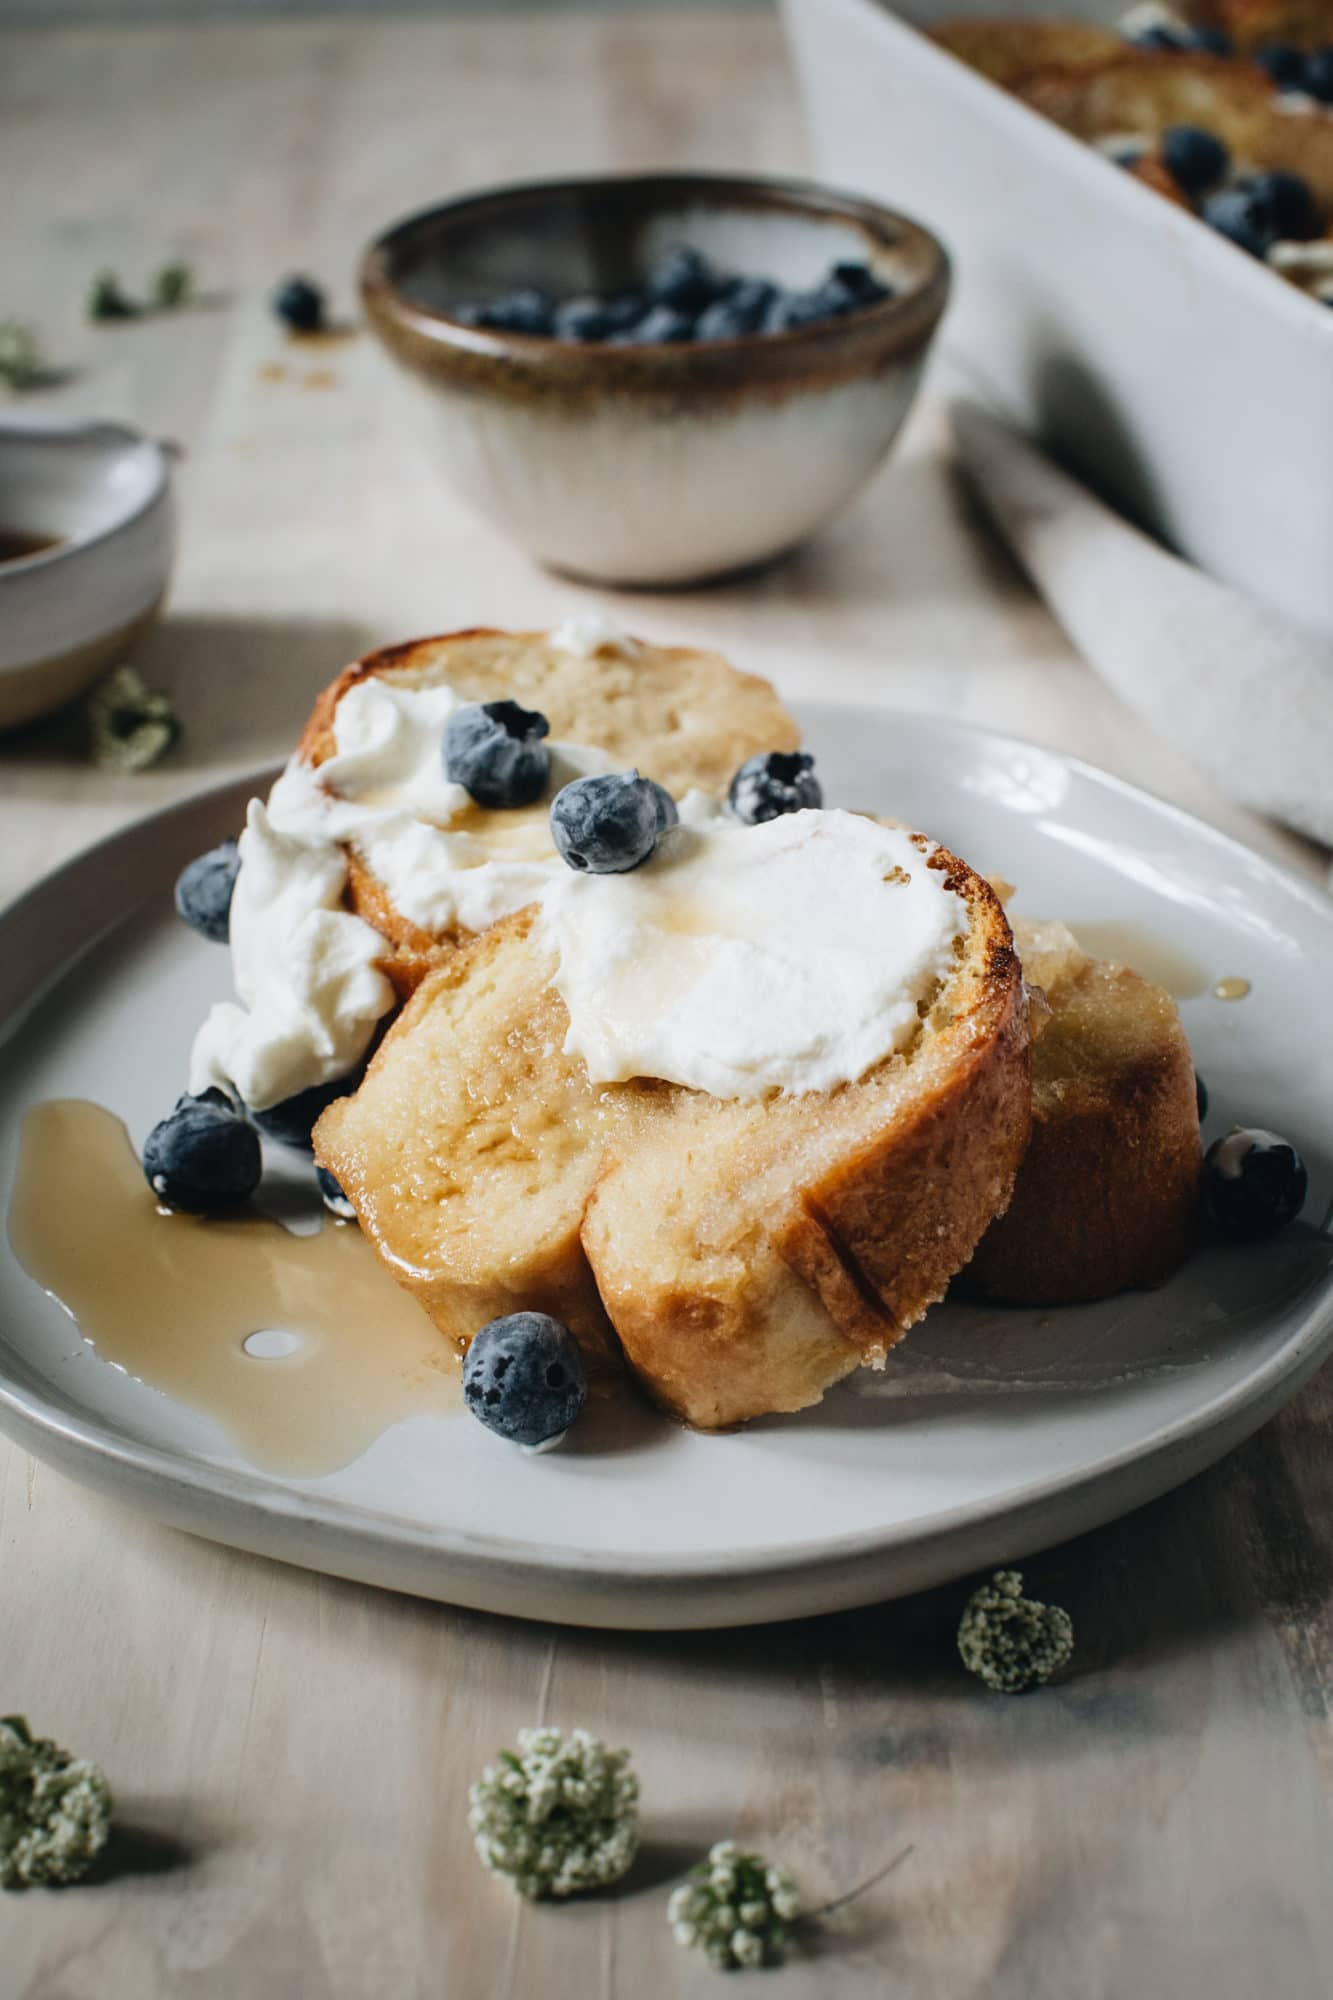 creme brulee french toast with whipped cream and blueberries on gray plate